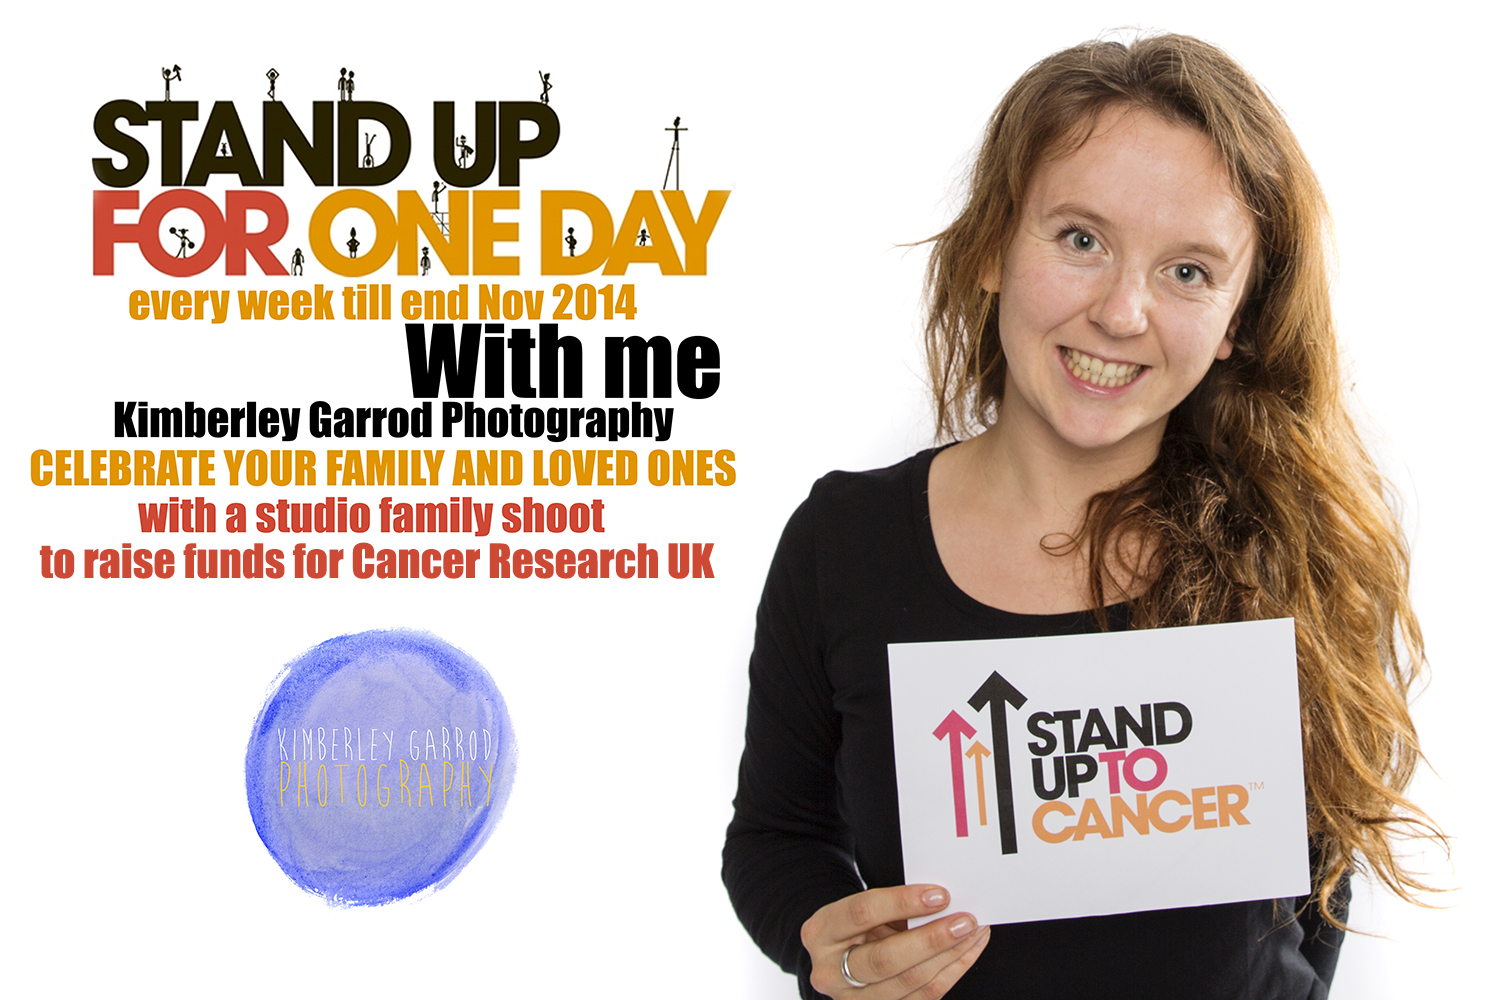 STAND UP TO CANCER KIMBERLEY GARROD